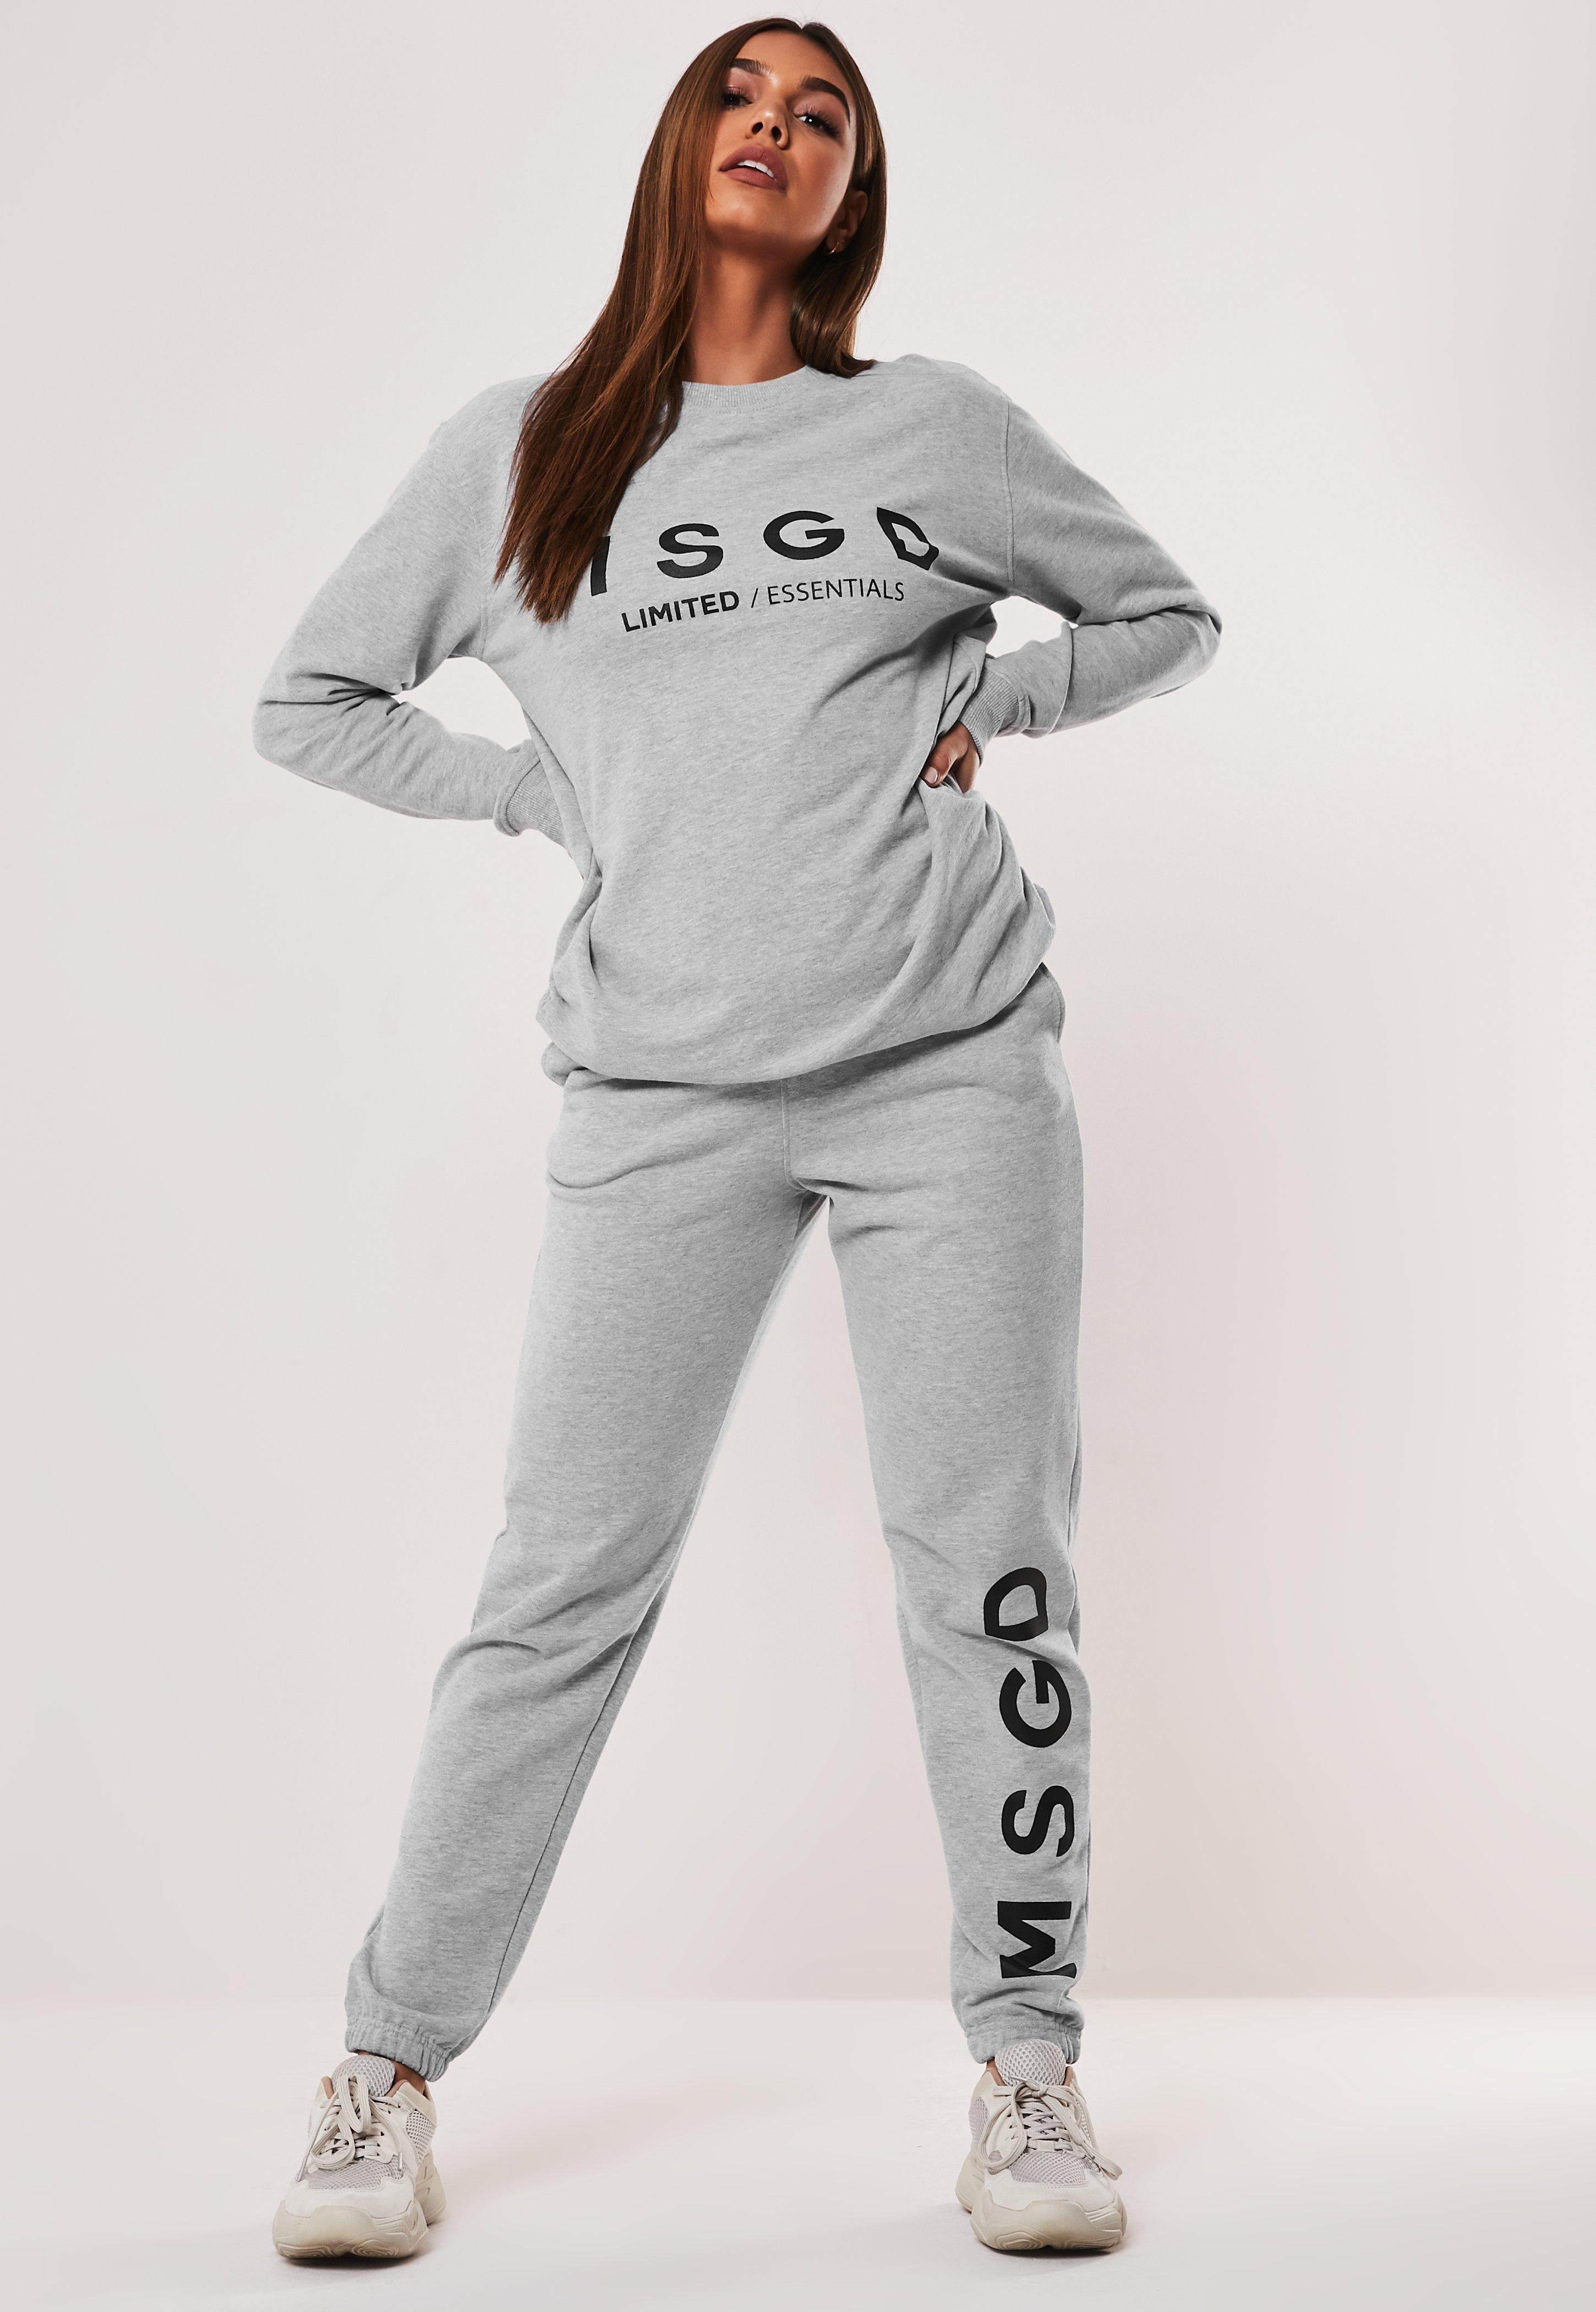 aesthetic appearance deft design classic style Active Grey Co Ord MSGD Joggers